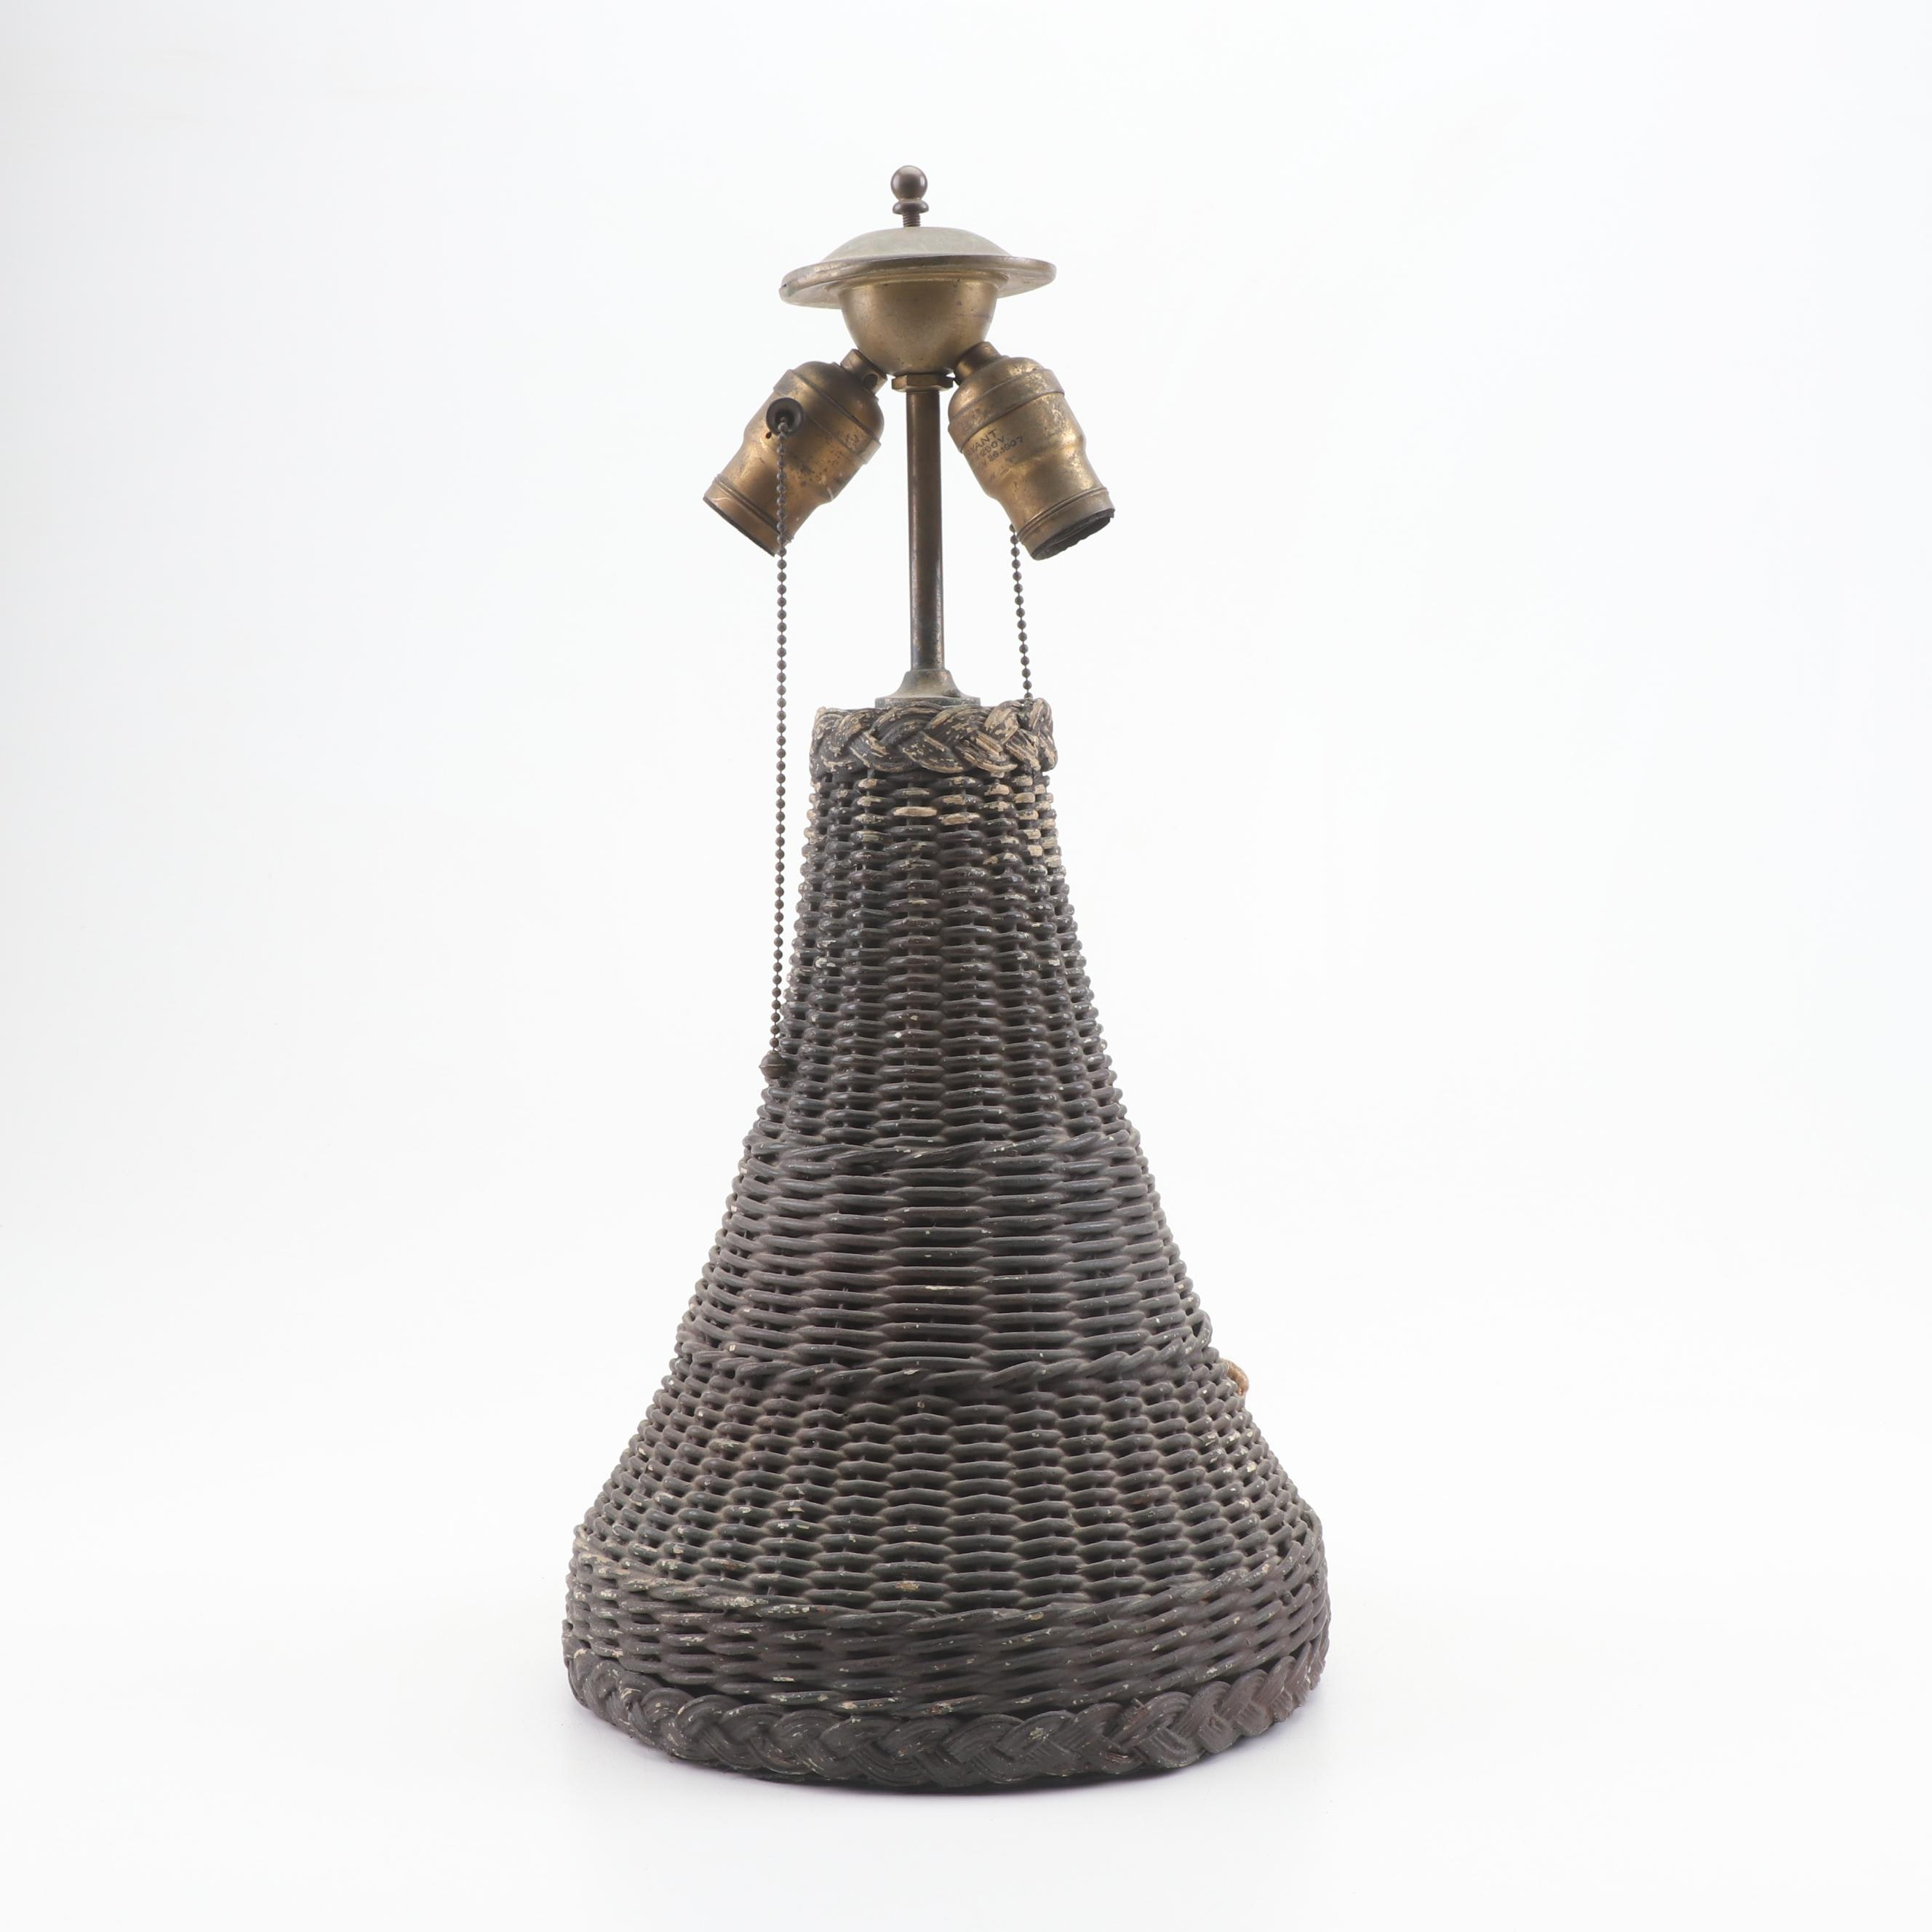 Painted Wicker Table Lamp, Early 20th Century